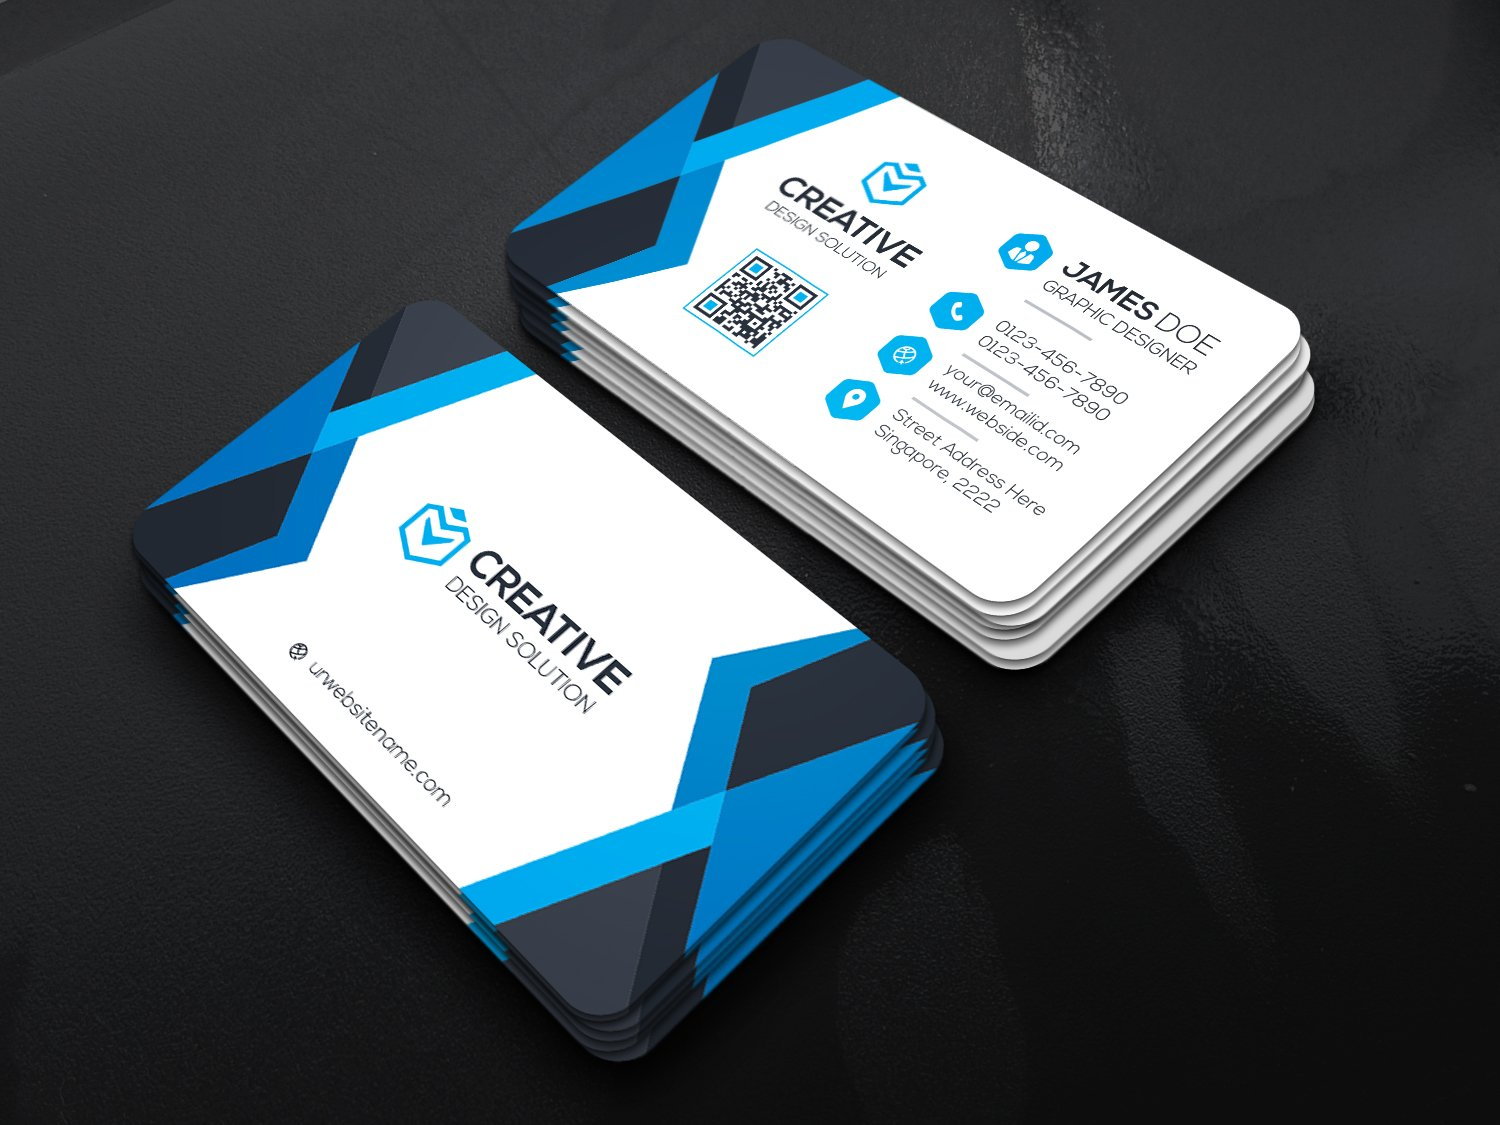 How to save business cards gallery free business cards business card printing newcastle image collections free business electronic business card choice image free business cards magicingreecefo Gallery